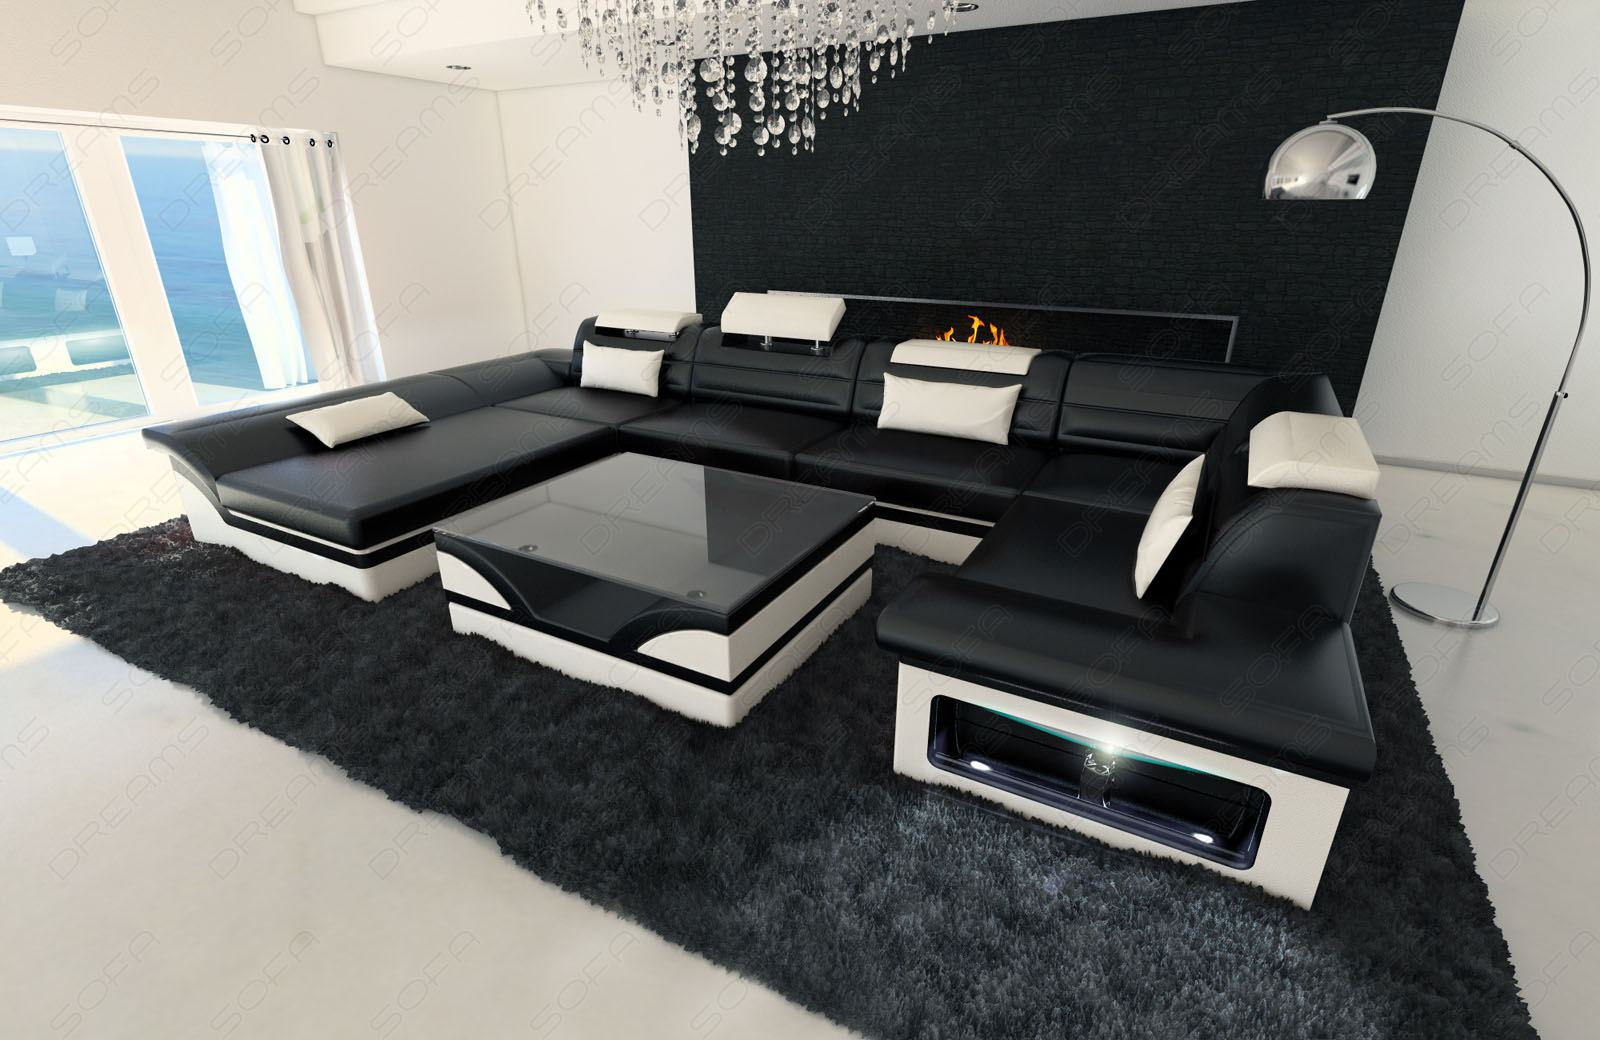 Big Leather Sofa ENZO with LED Lights black white